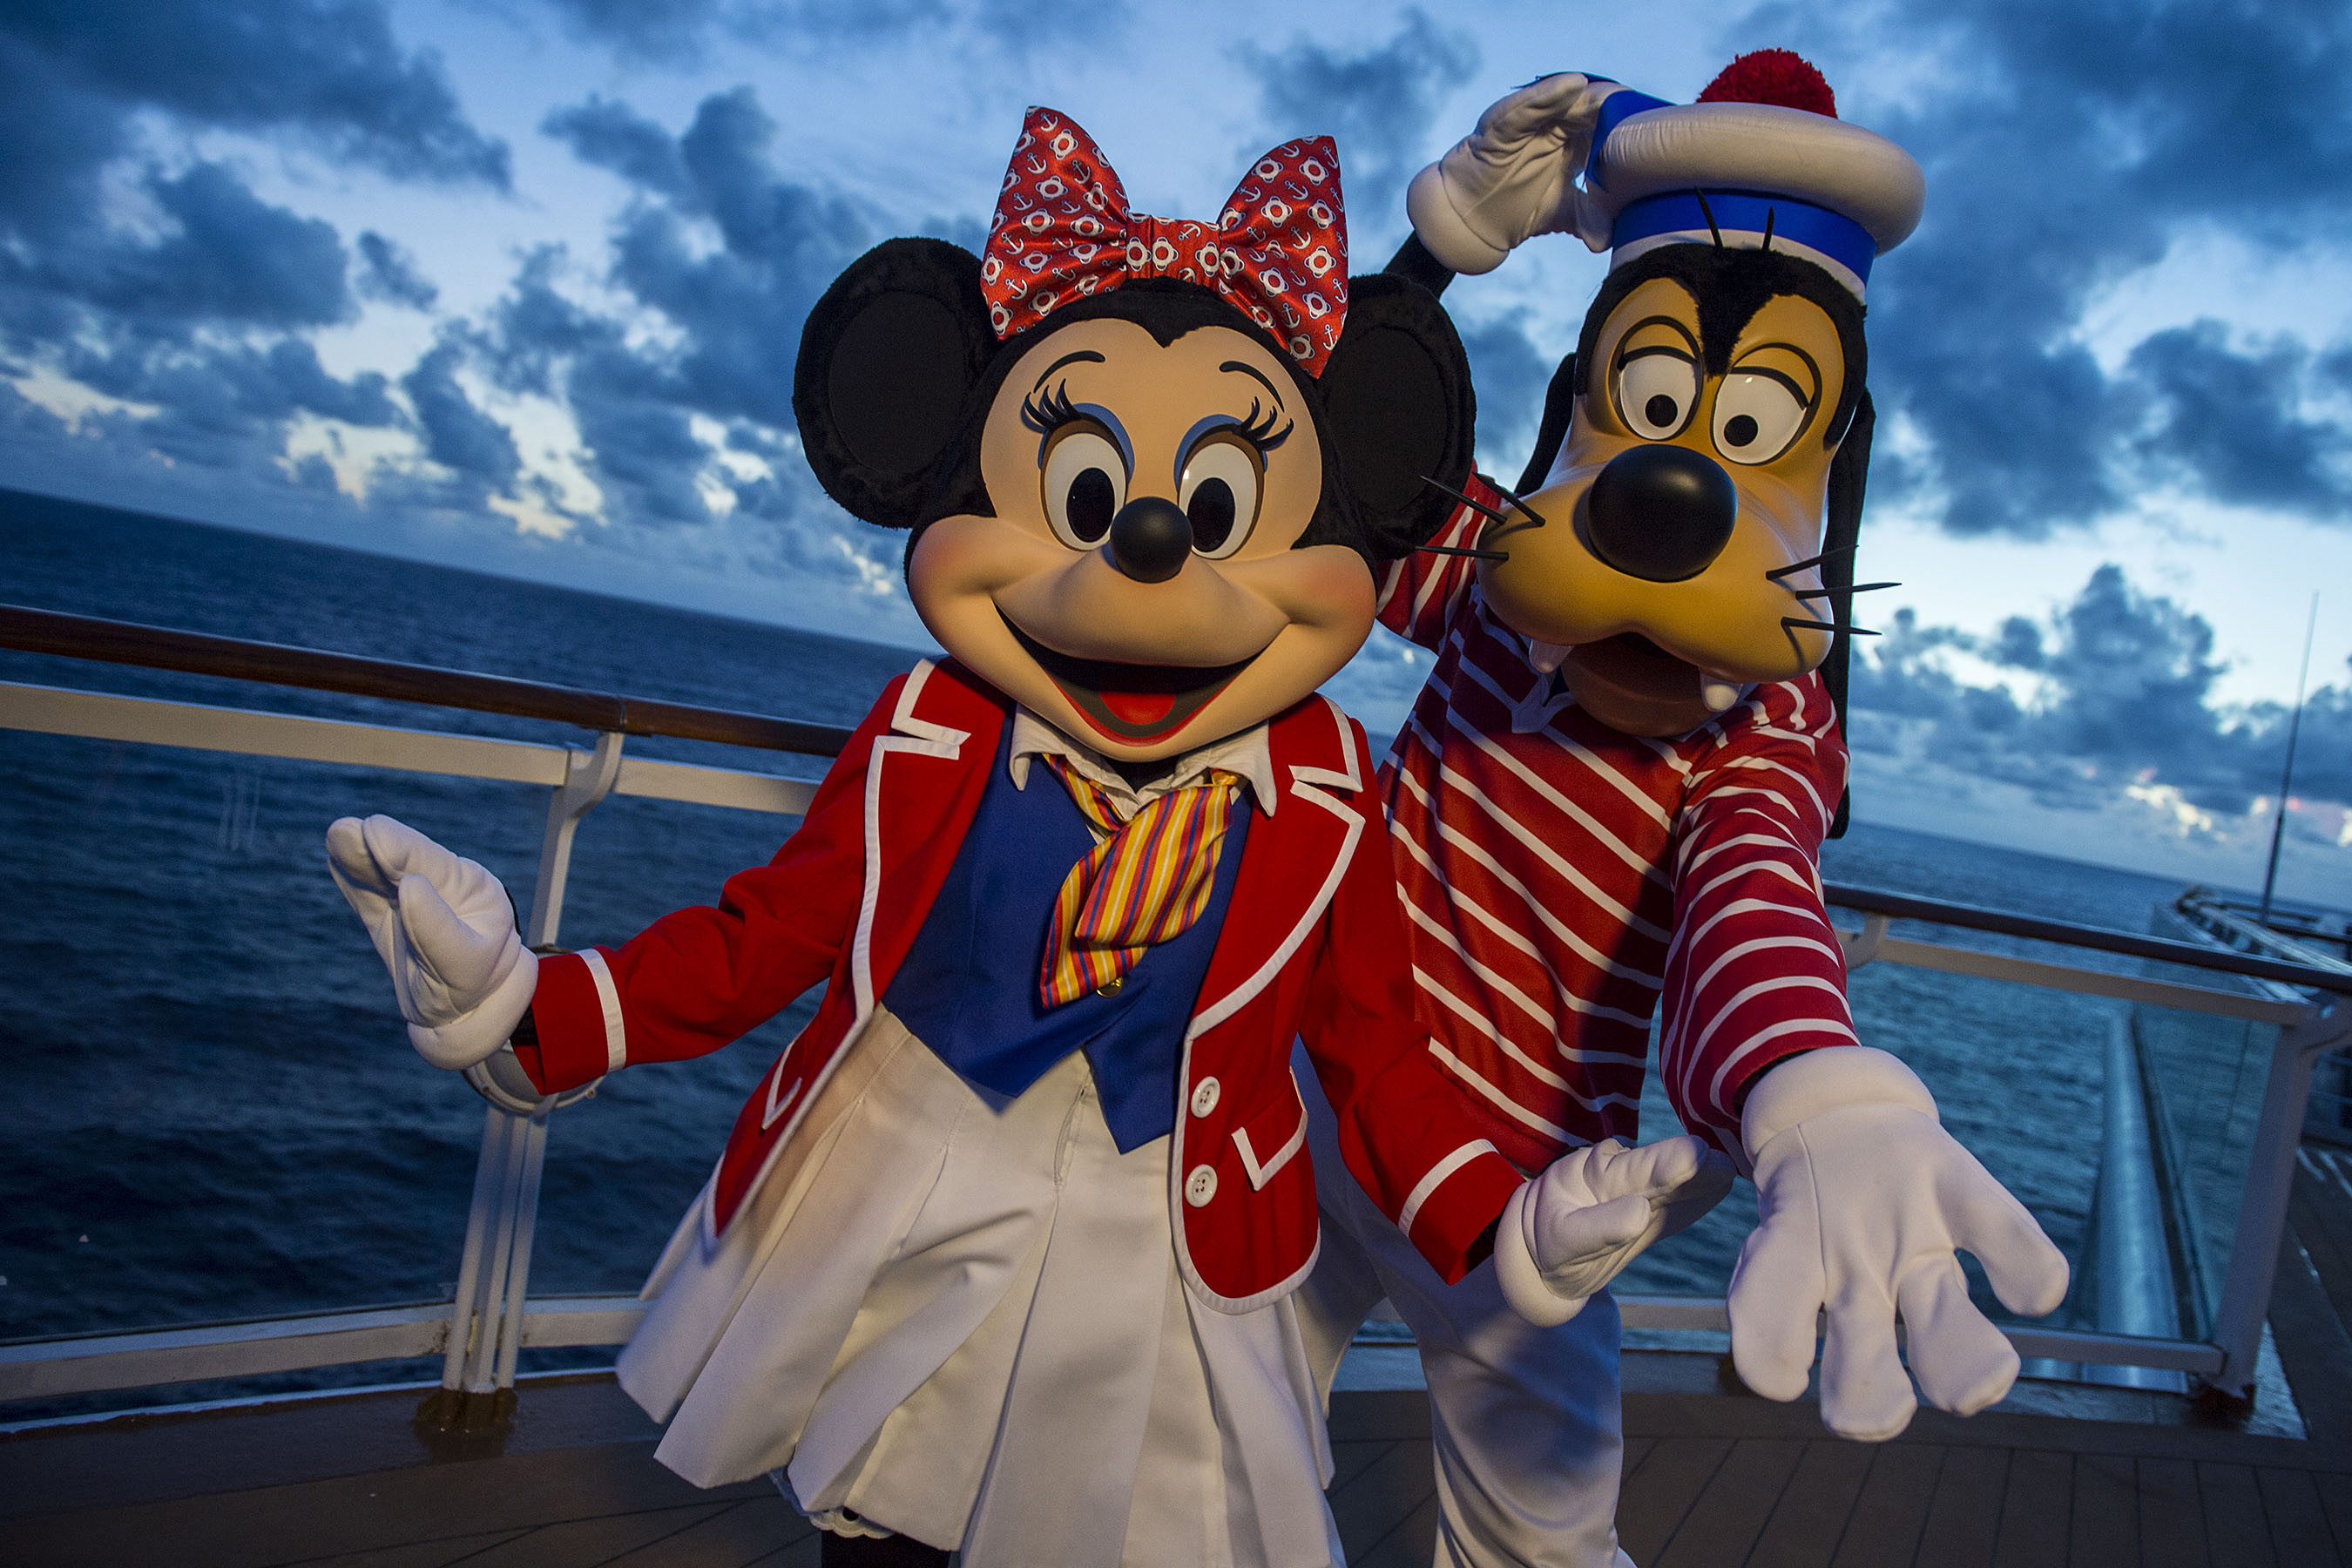 Minnie and Goofy on the Disney Magic